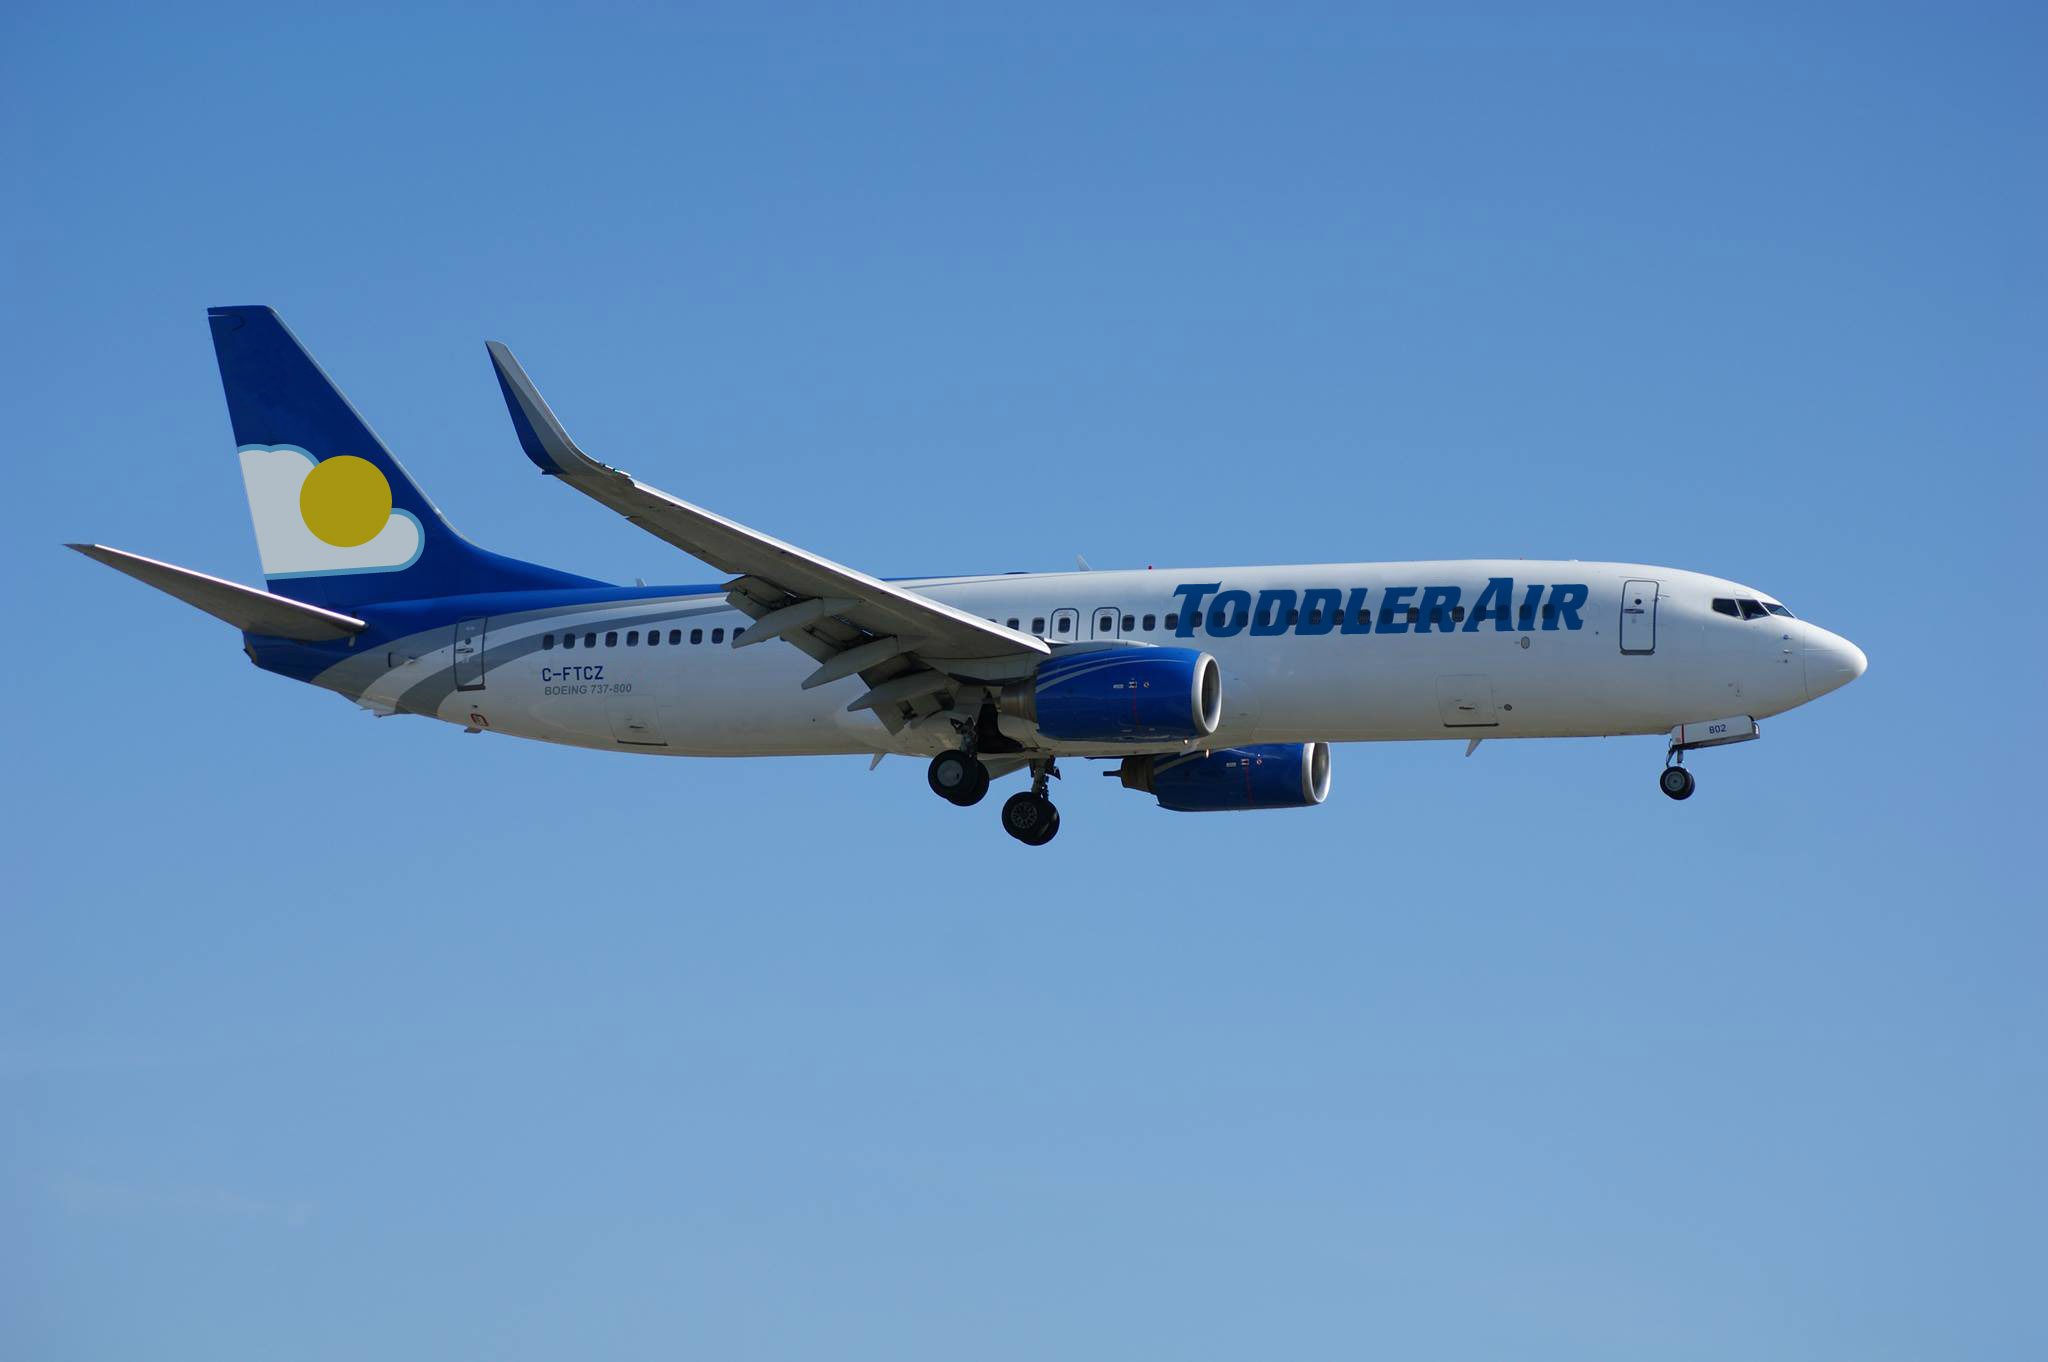 Aviation photographer and planespotter, Dan Miclea captures ToddlerAir Flight 267 on final approach.